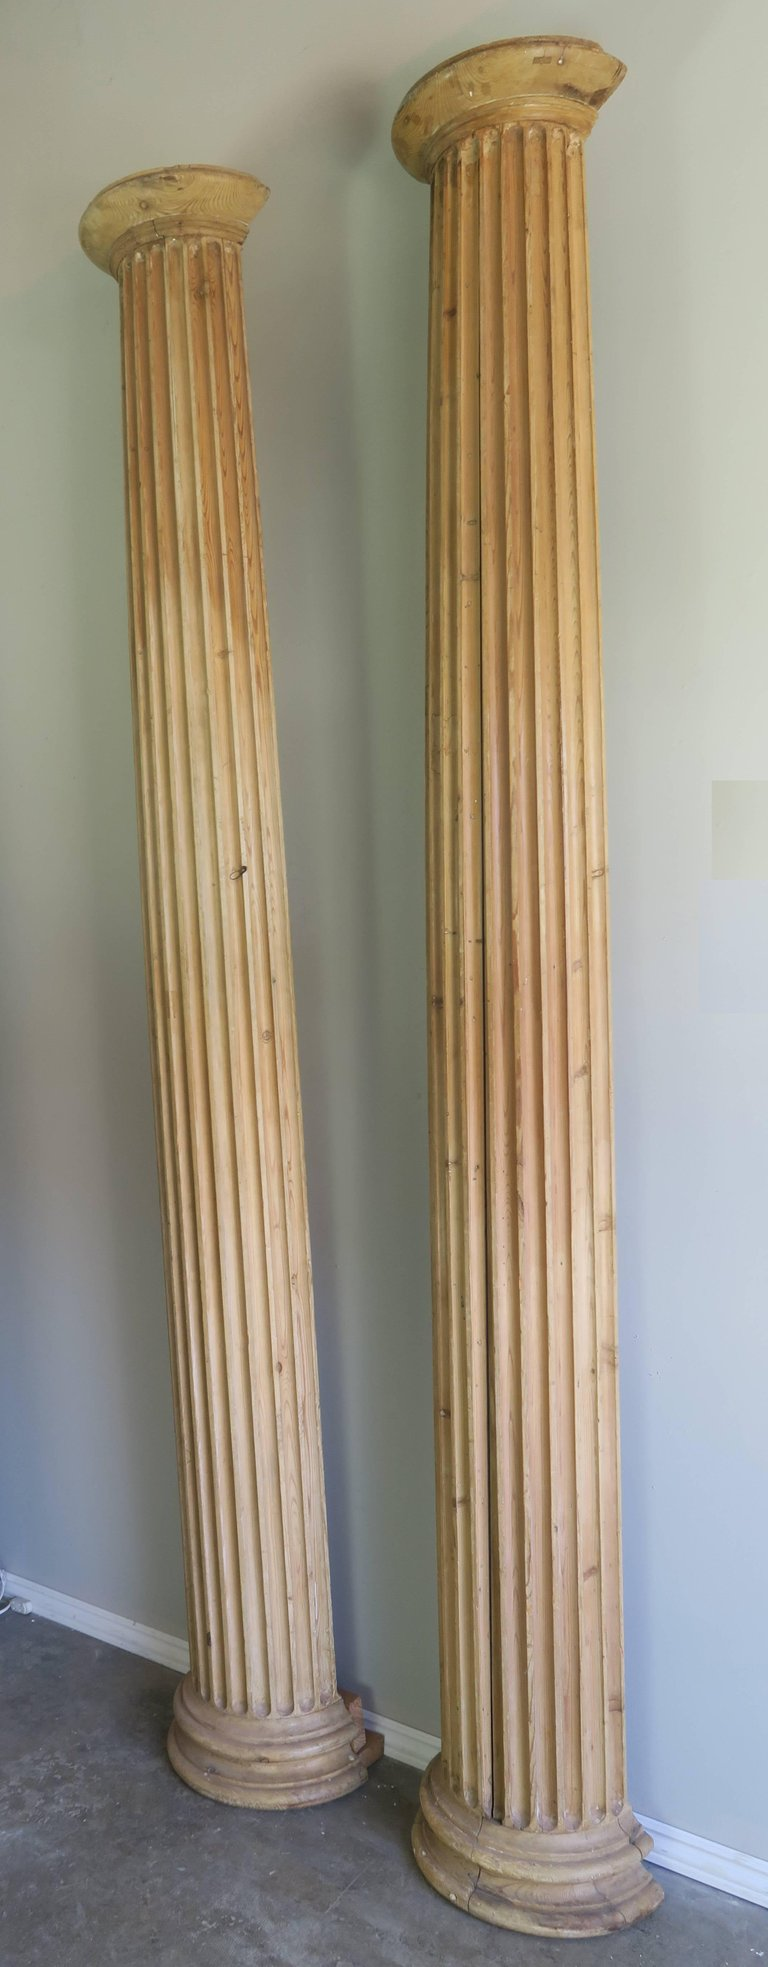 19th Century Italian Carved Pinewood Pilasters, Pair 2